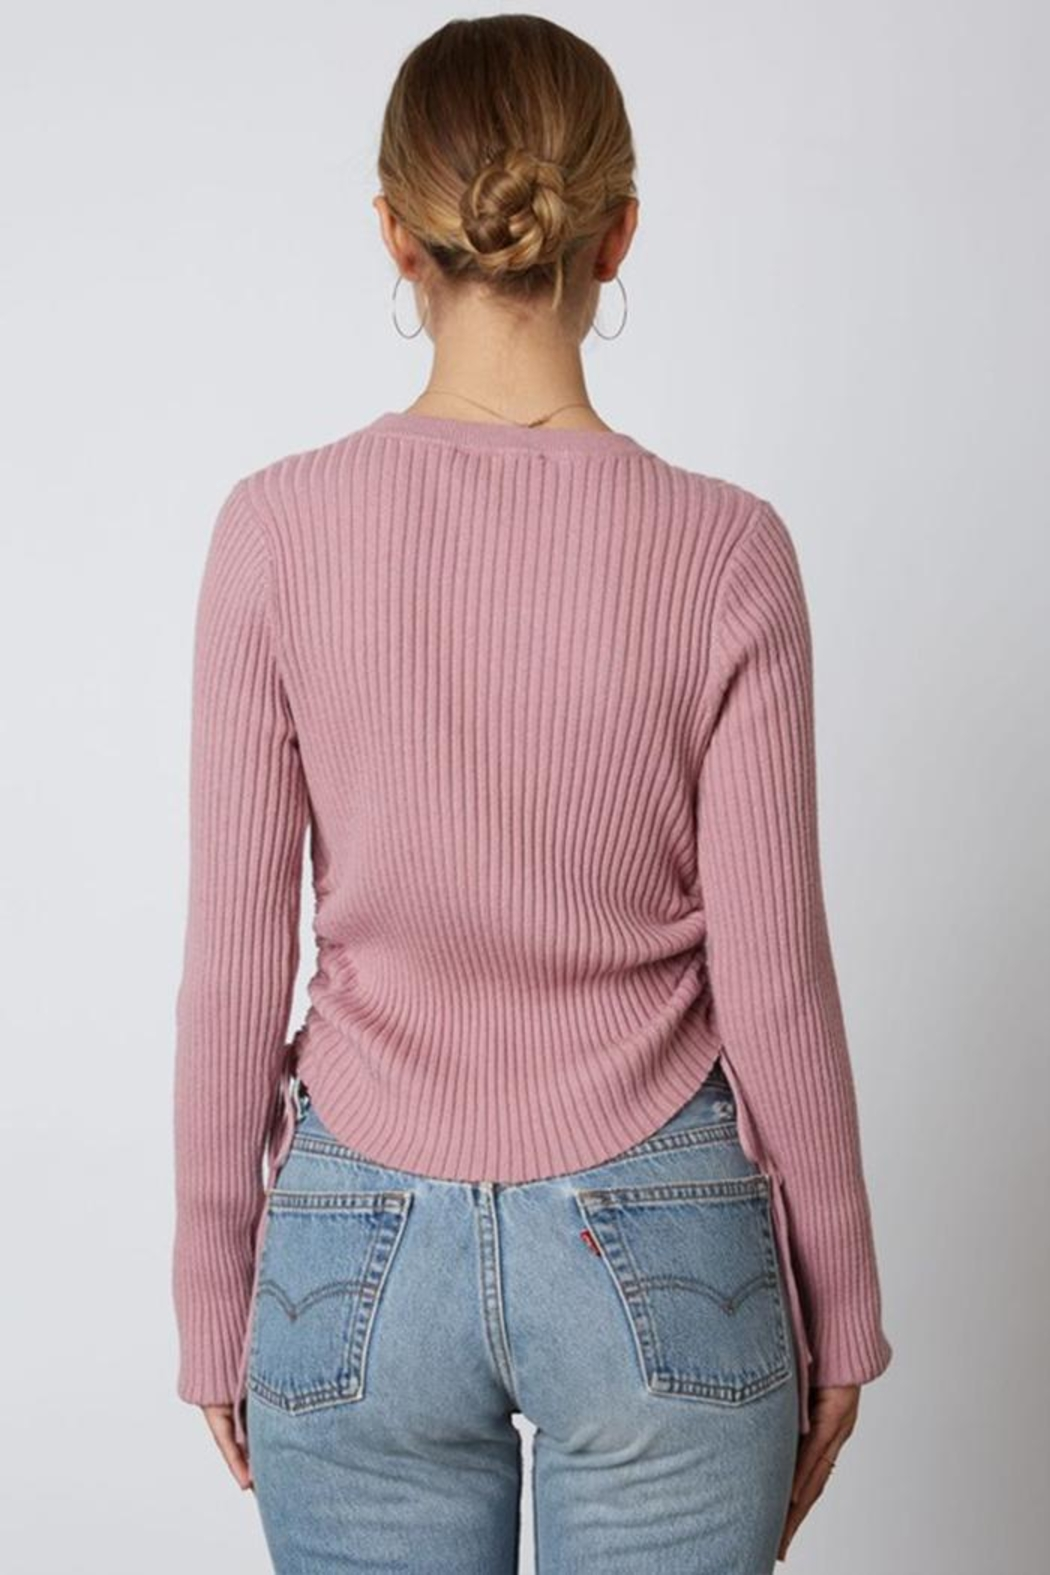 Cotton Candy LA Ribbed Cinched Sweater - Side Cropped Image